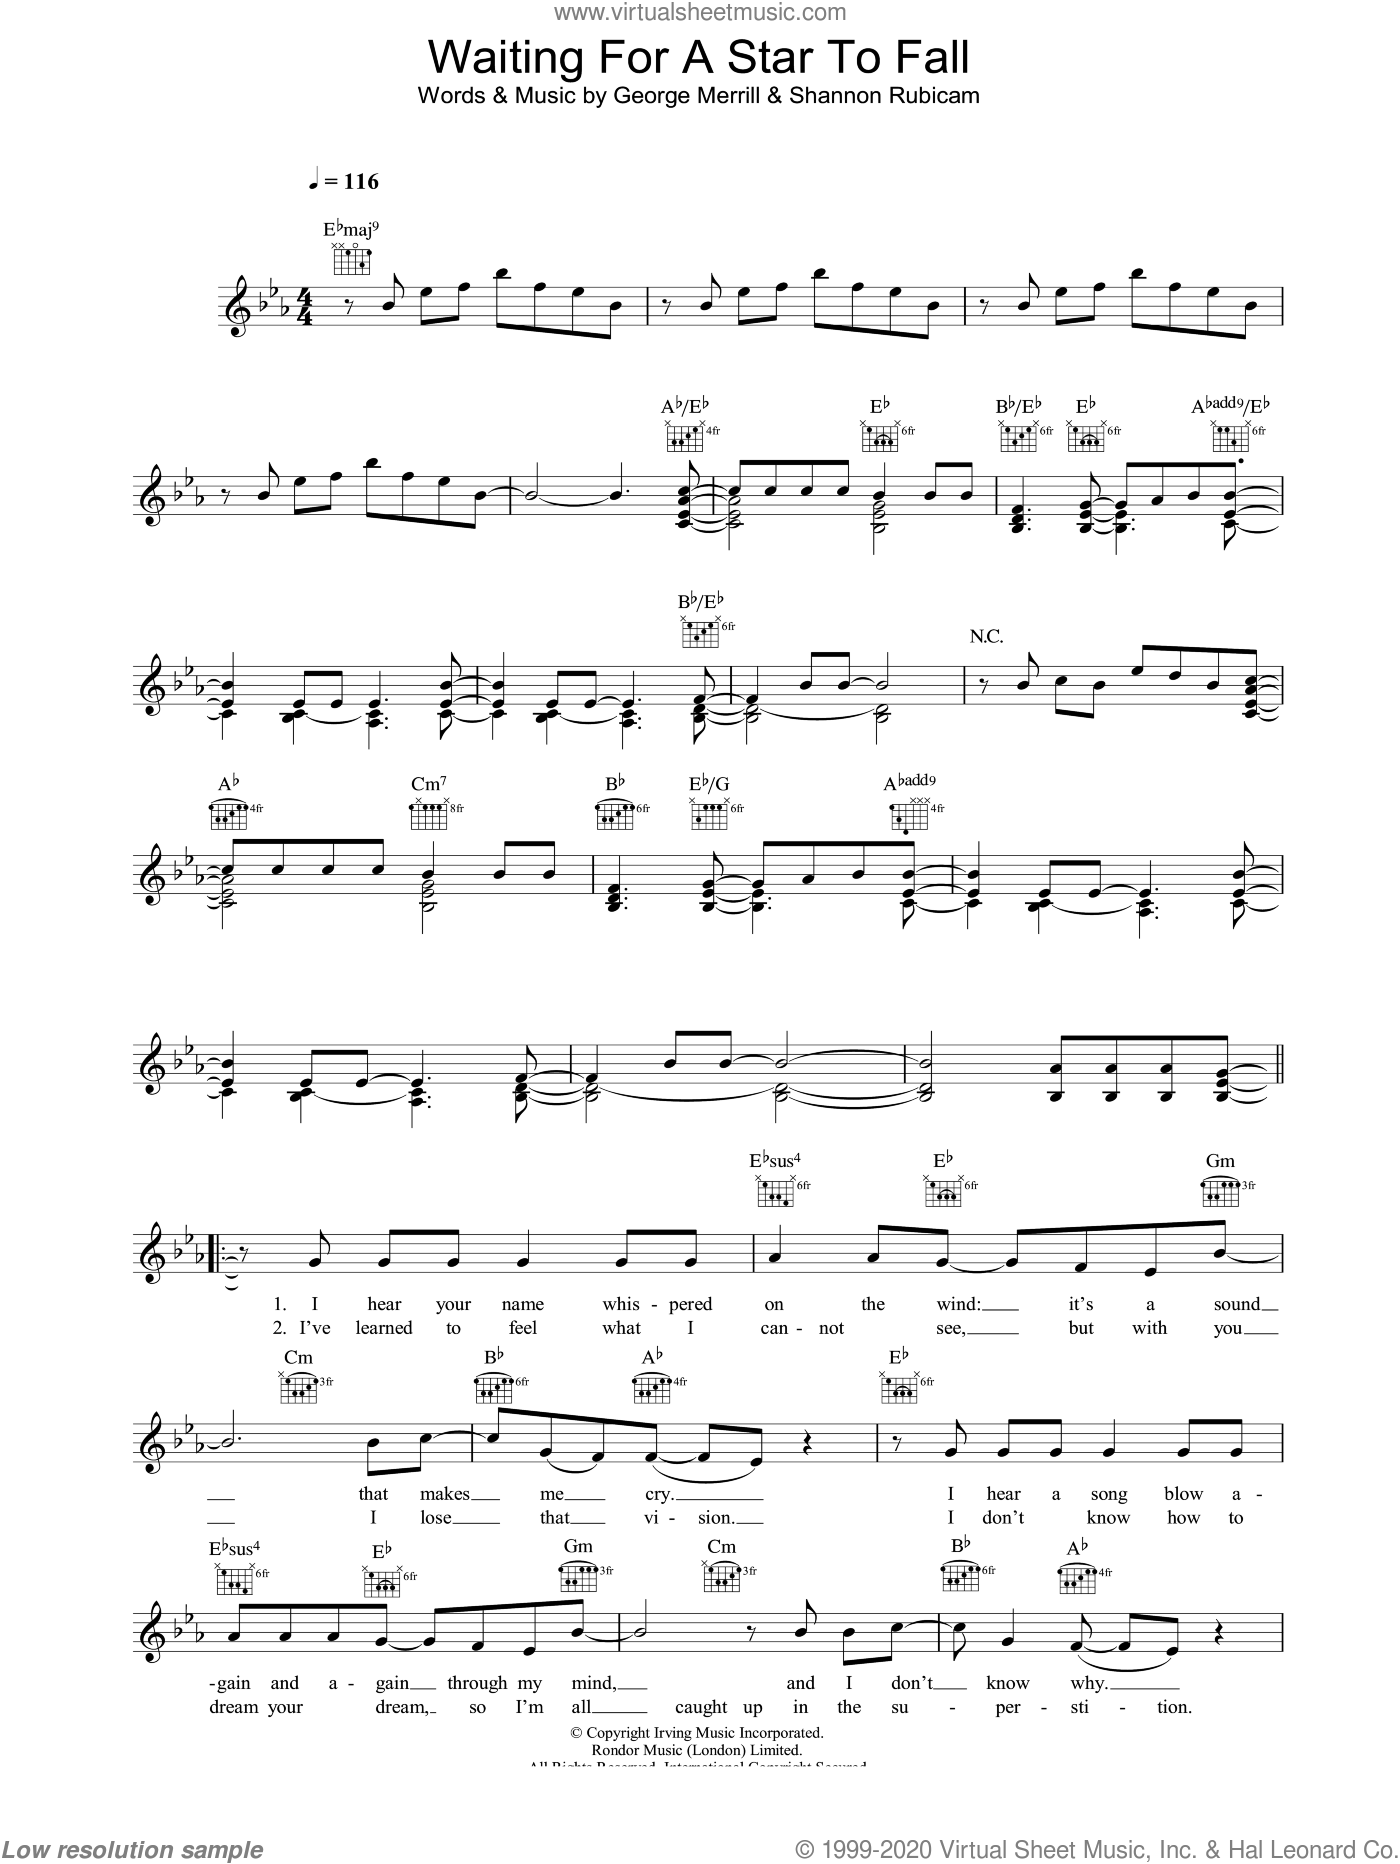 Waiting For A Star To Fall sheet music for voice and other instruments (fake book) by Shannon Rubicam and George Merrill. Score Image Preview.